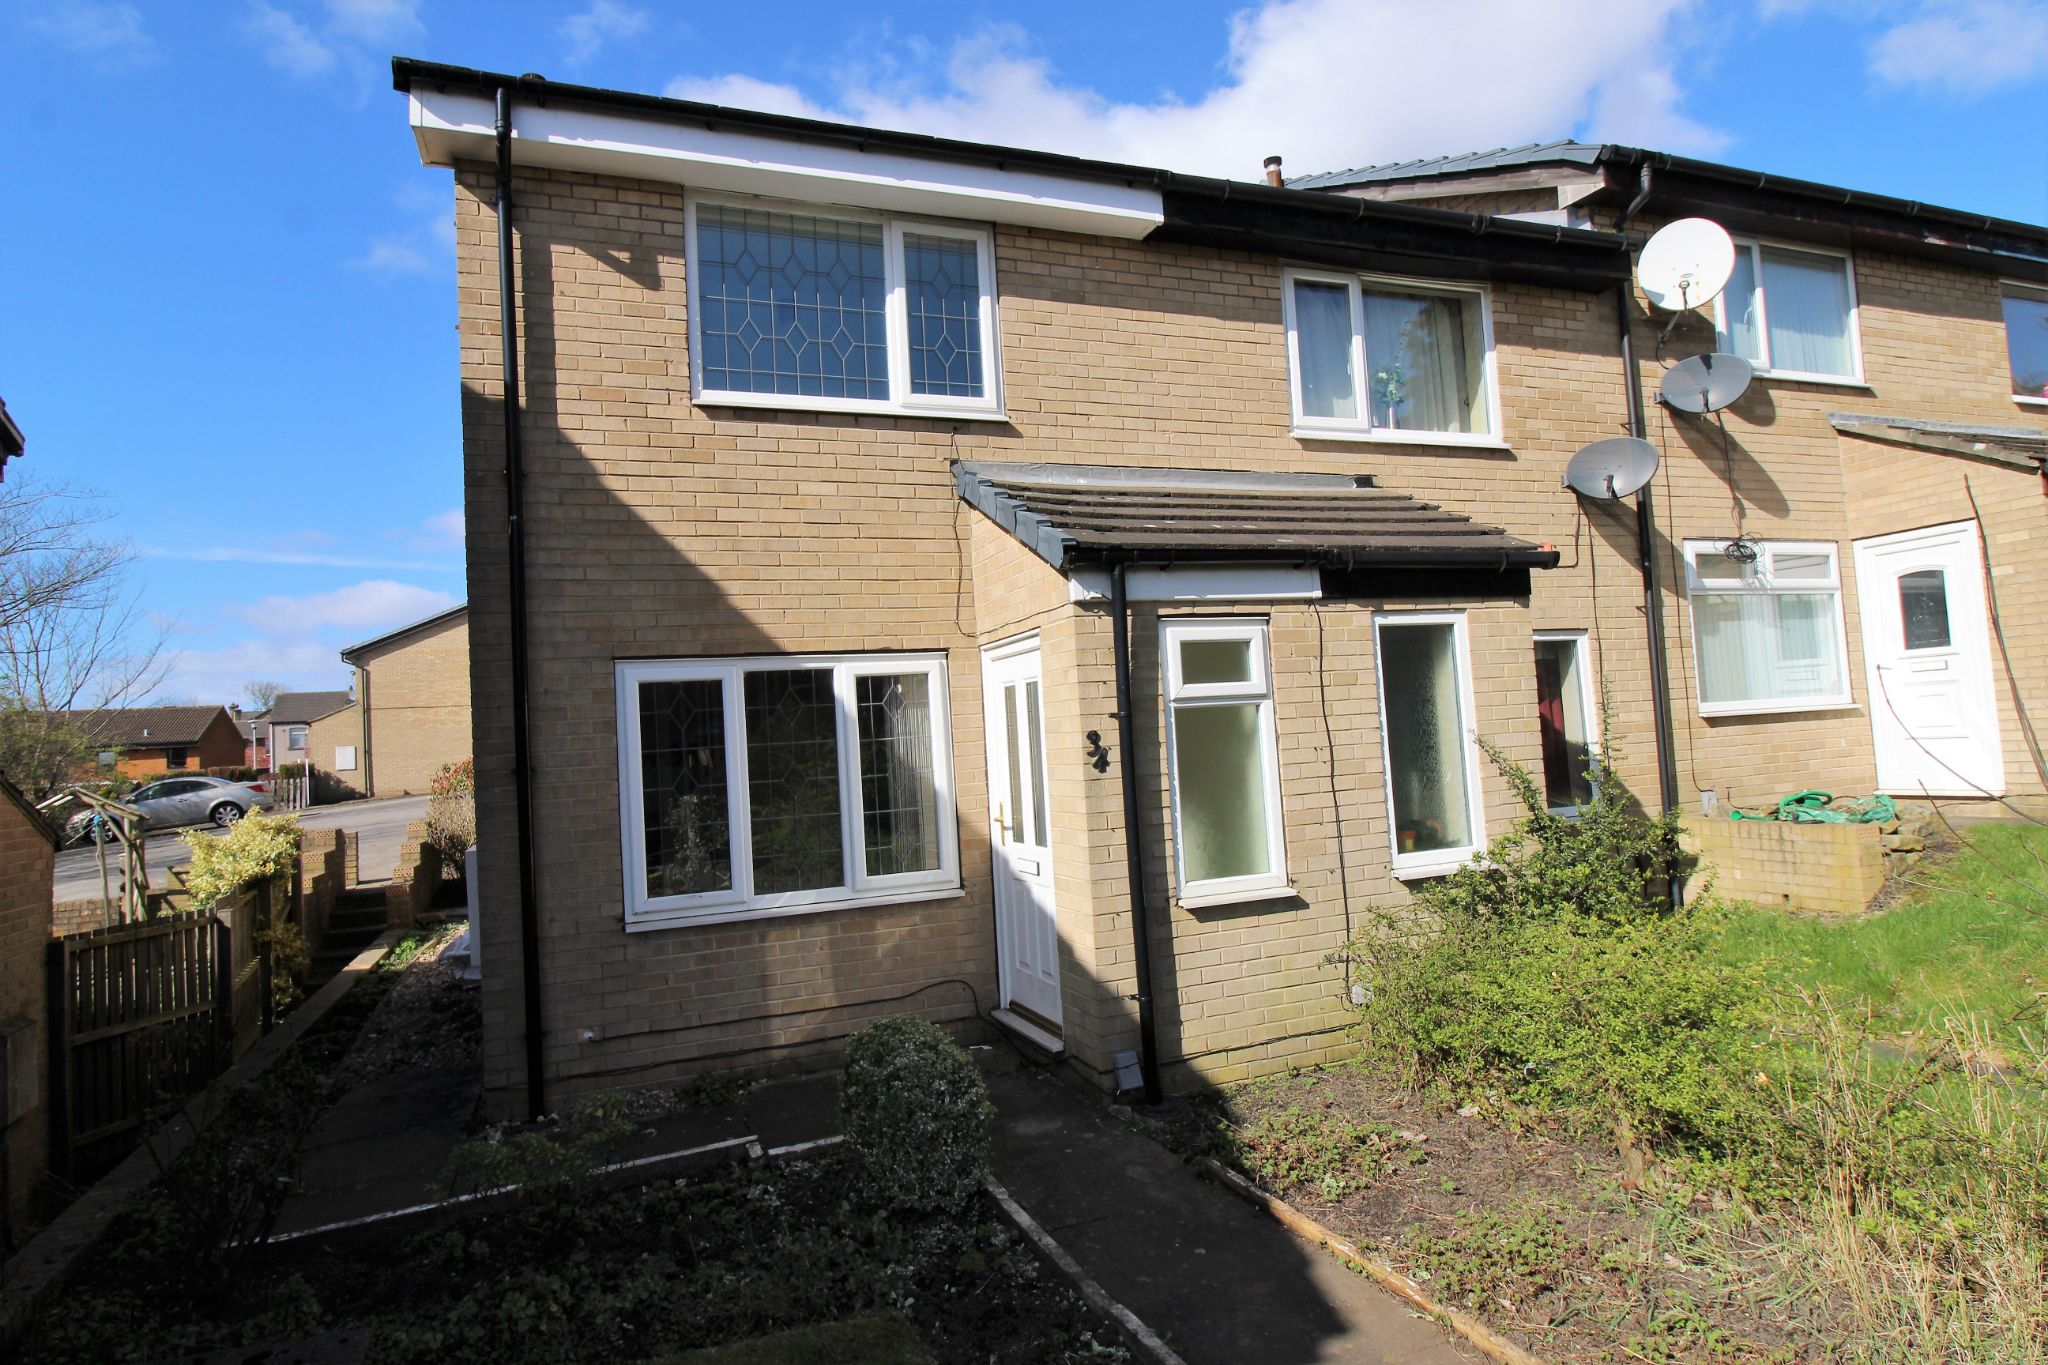 2 bedroom mid terraced house SSTC in Bradford - Photograph 16